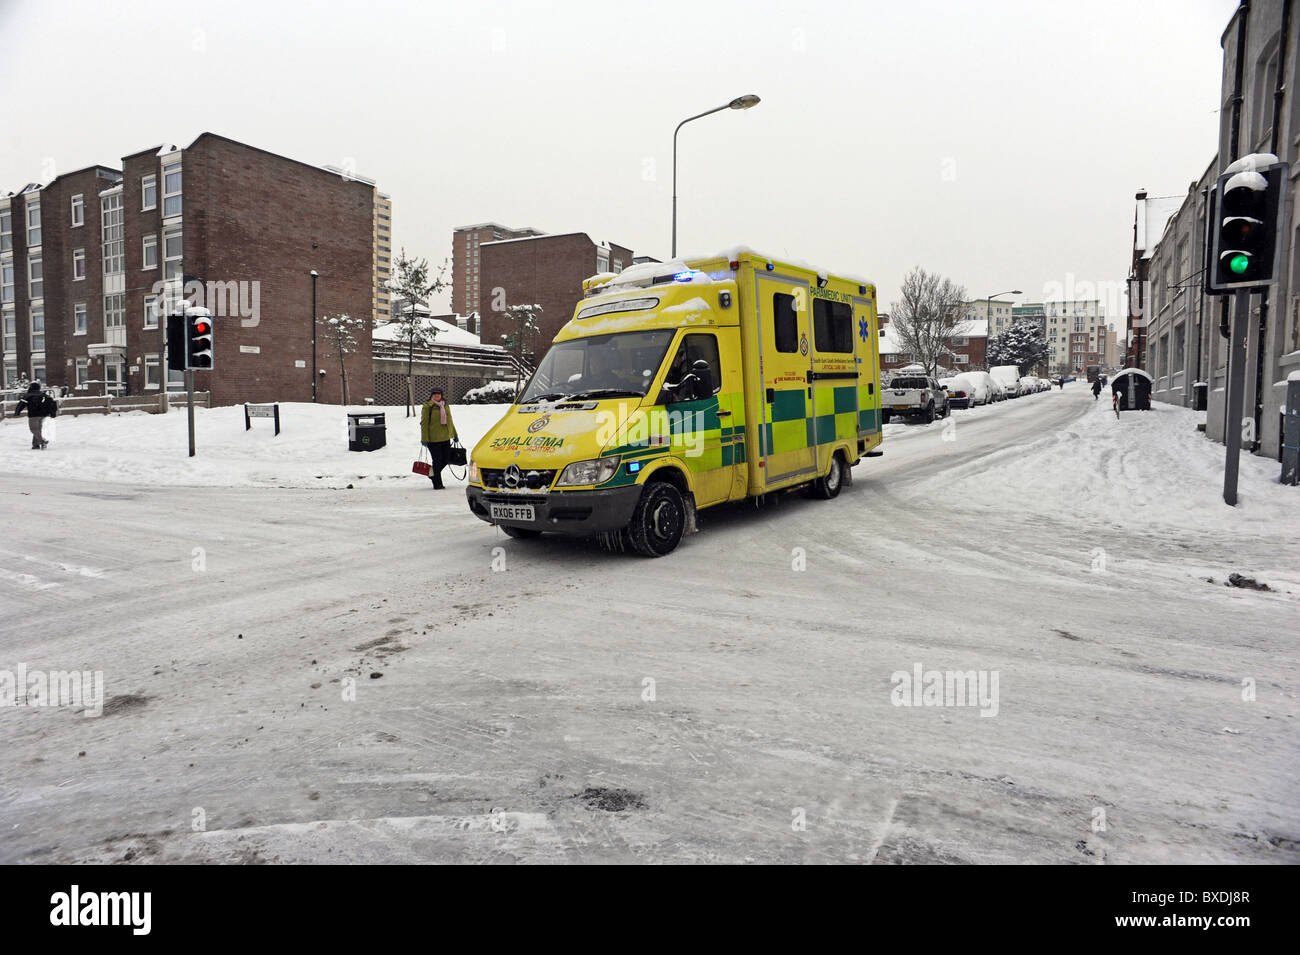 An Ambulance in Brighton travels carefully over the icy roads to answer an emergency call - Stock Image